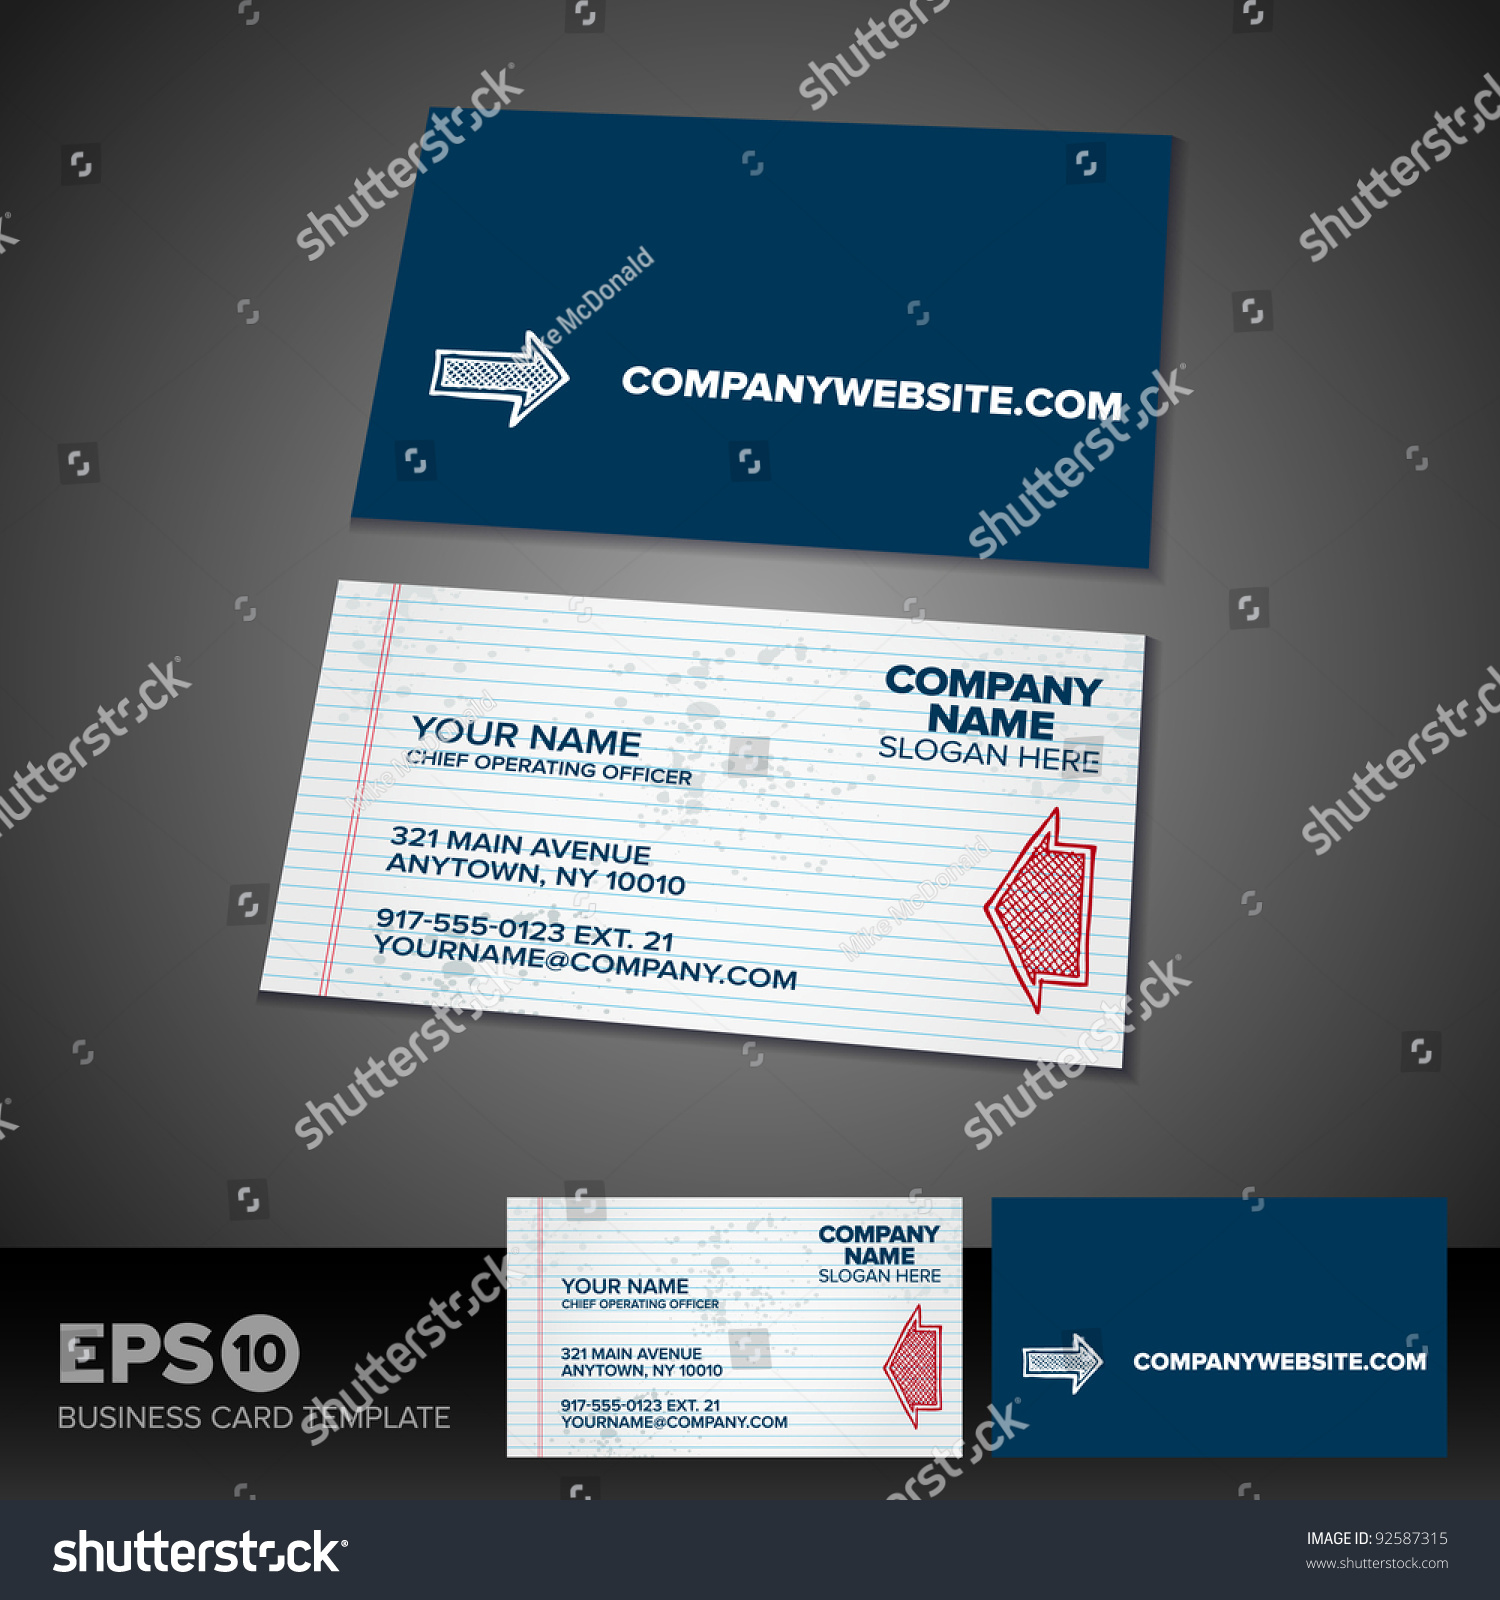 Notepad Paper Business Card Template Solid Stock Vector 92587315 ...